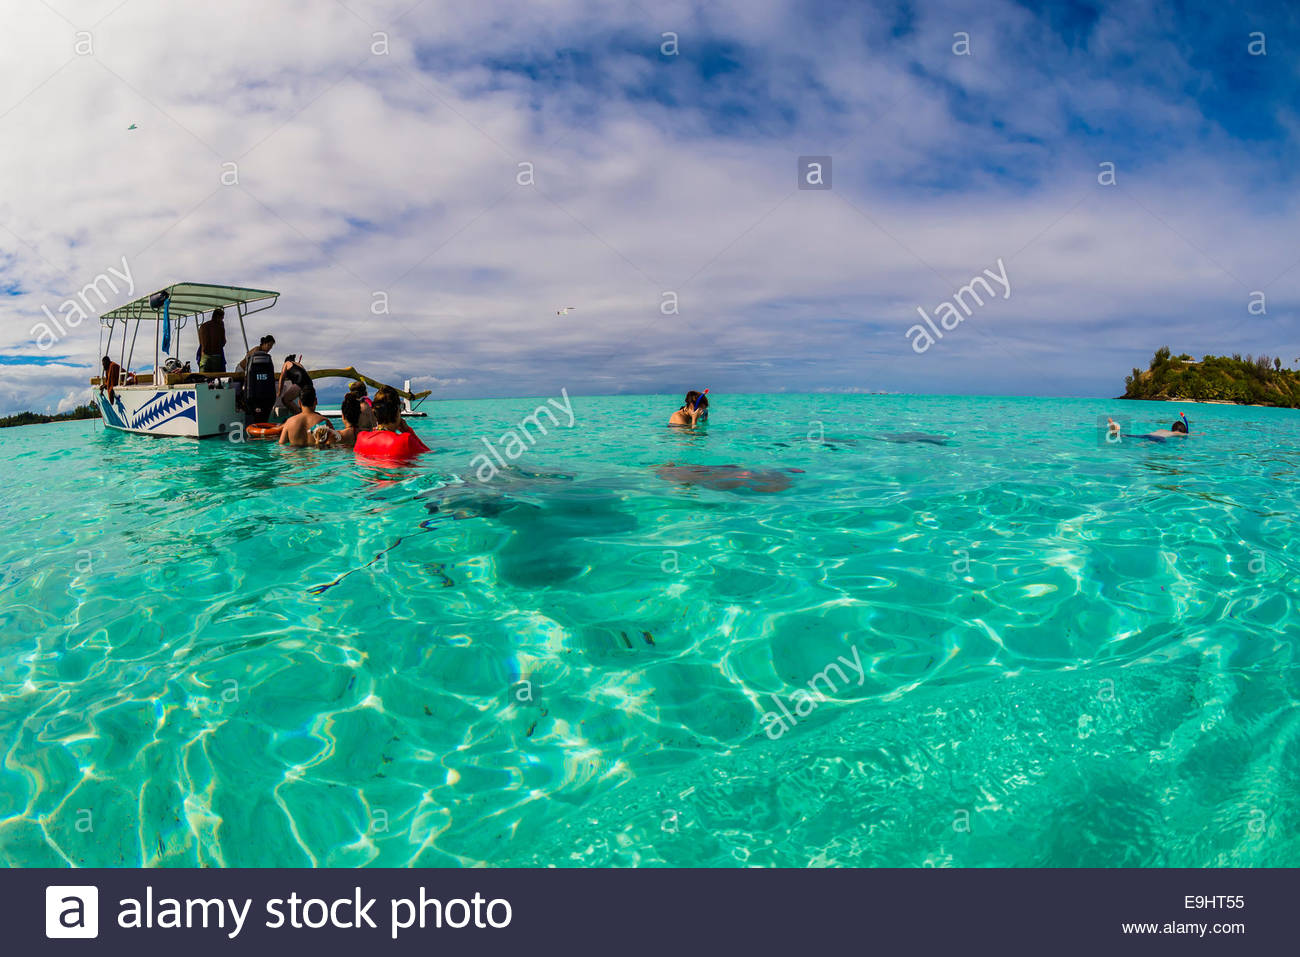 Swimming with stingrays off the island of Bora Bora, Society Islands, French Polynesia. - Stock Image